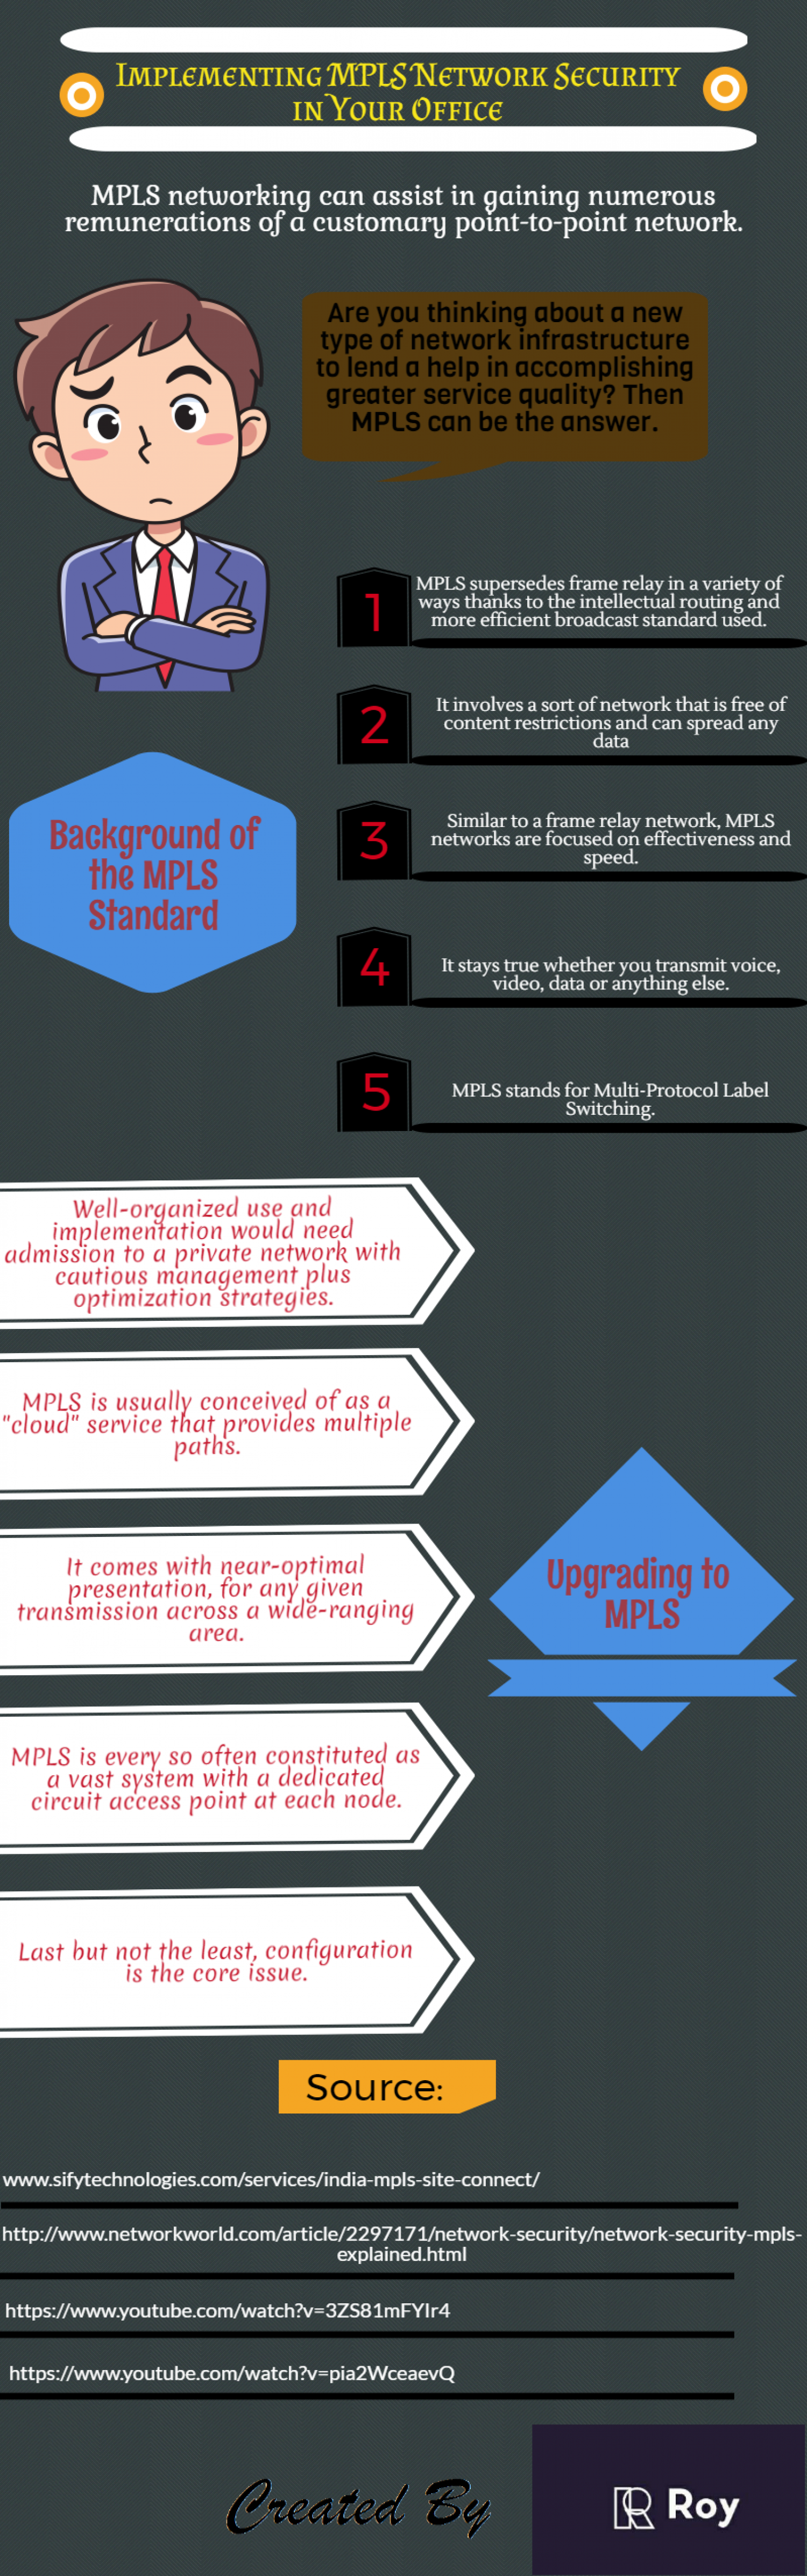 Implementing MPLS Network Security in Your Office Infographic